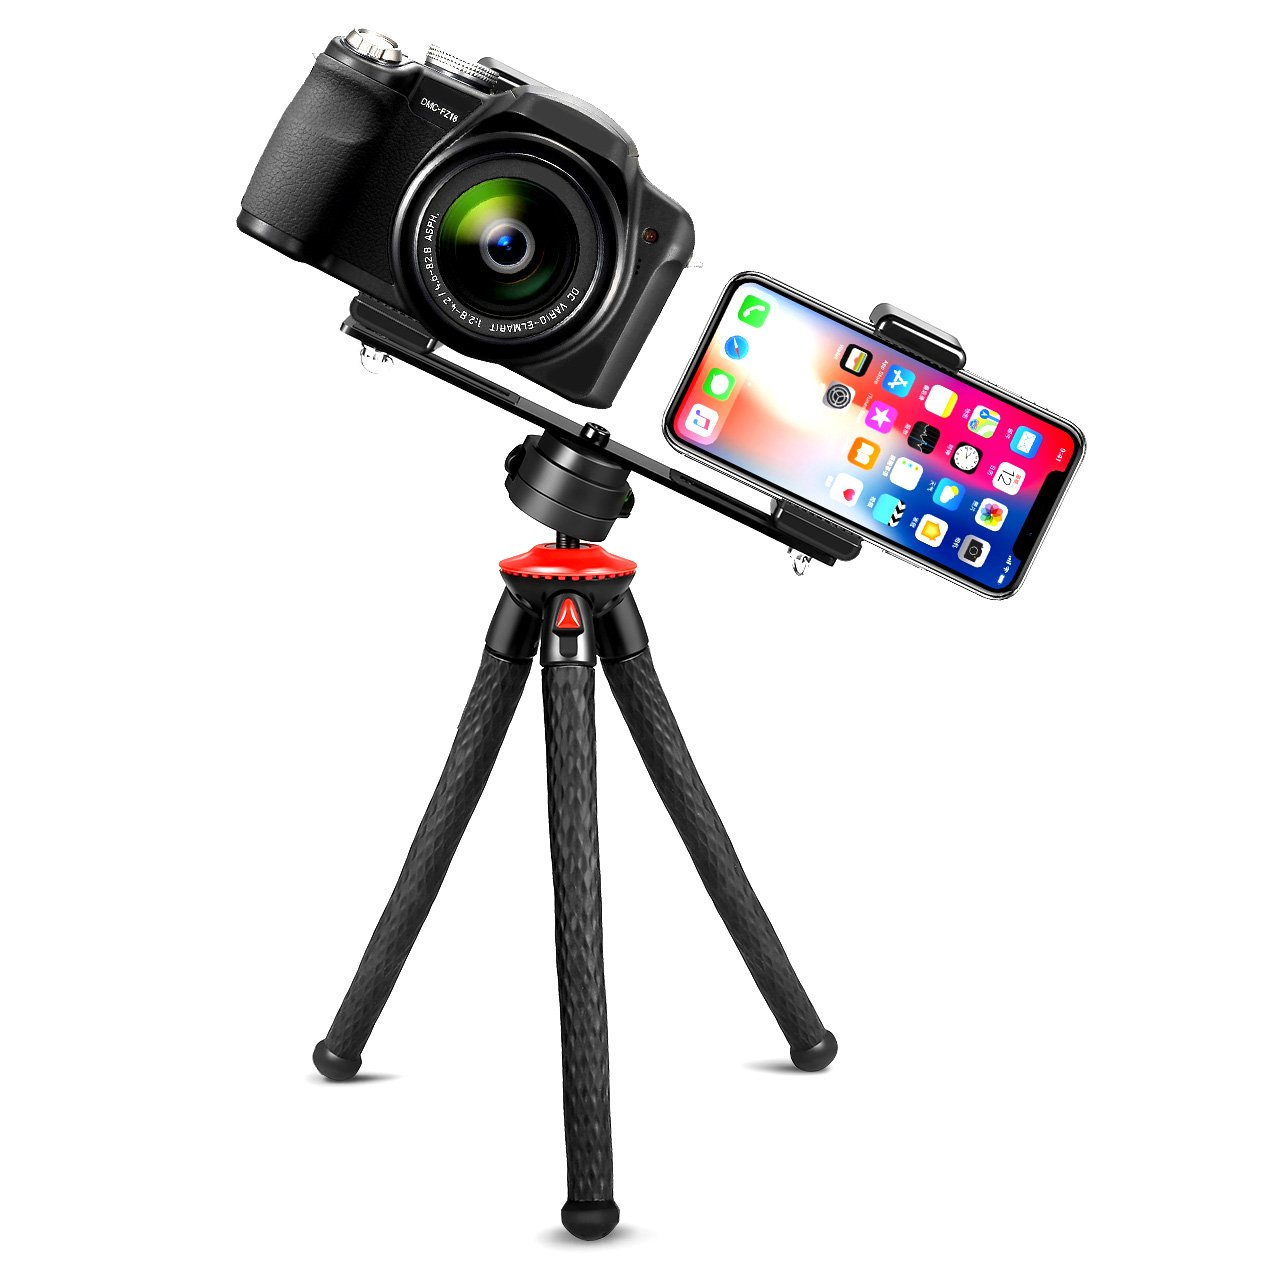 Camera Tripod, Fotopro Phone Tripod with Dual 1/4'' Screw Camera Mount Tripod Bracket for Smartphone, Portable with Bluetooth Remote Control, Gopro Adapter, Phone Adapter for iPhone, Samsung